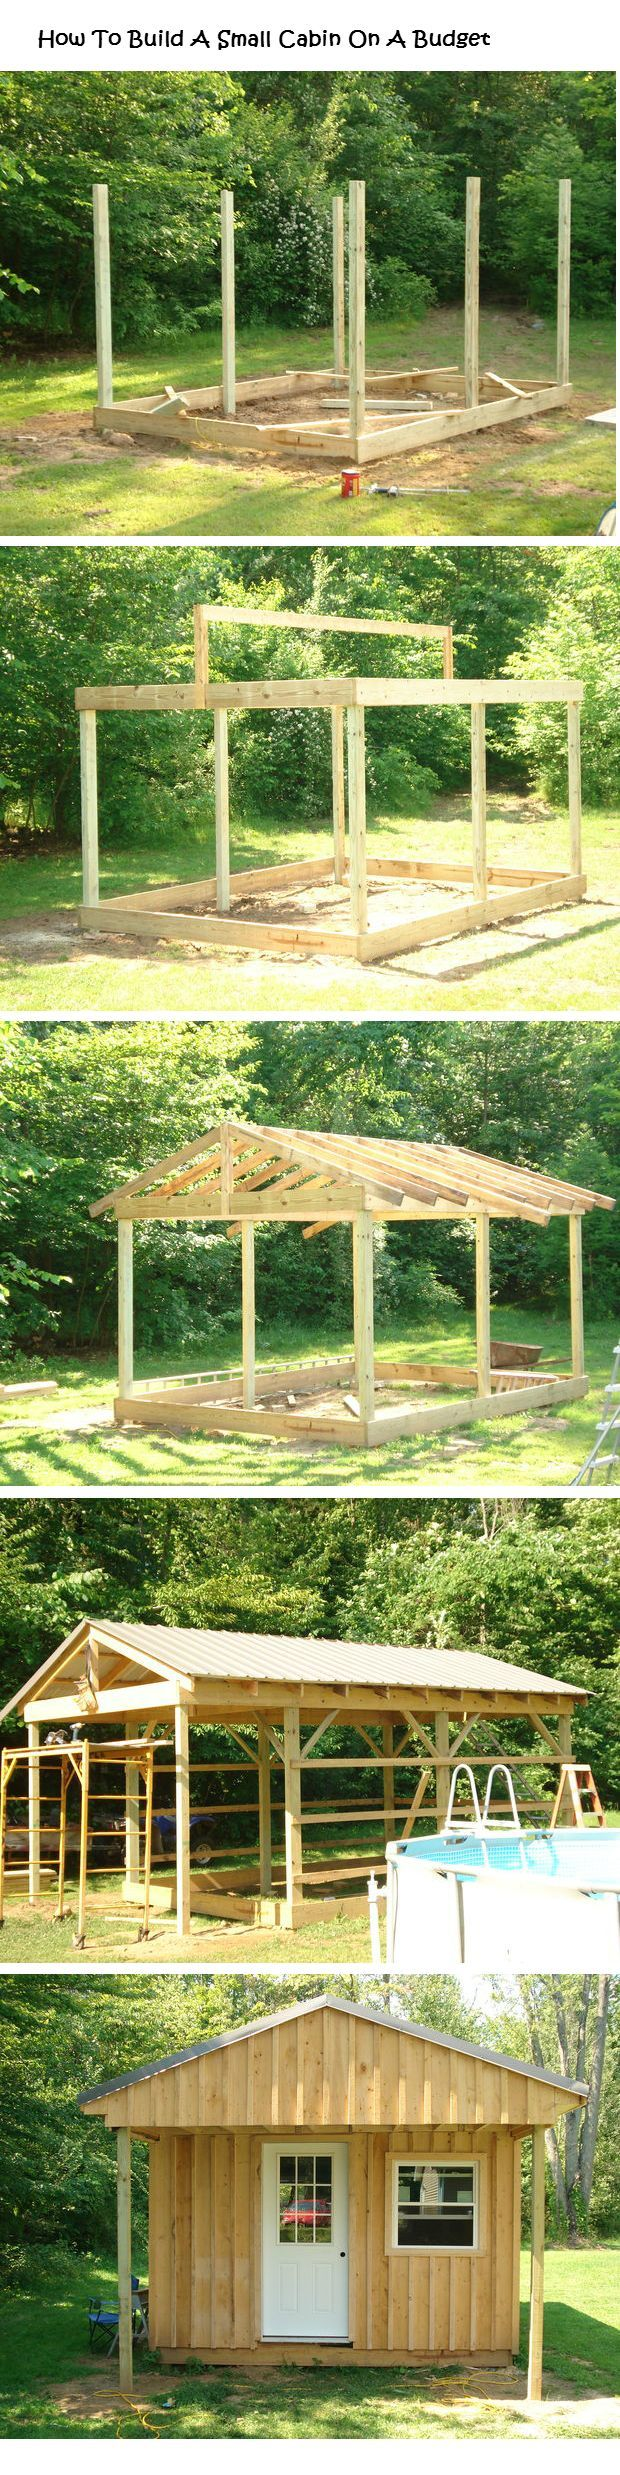 How To Build A Small Cabin On A Budget gardening on a budget #garden #budget